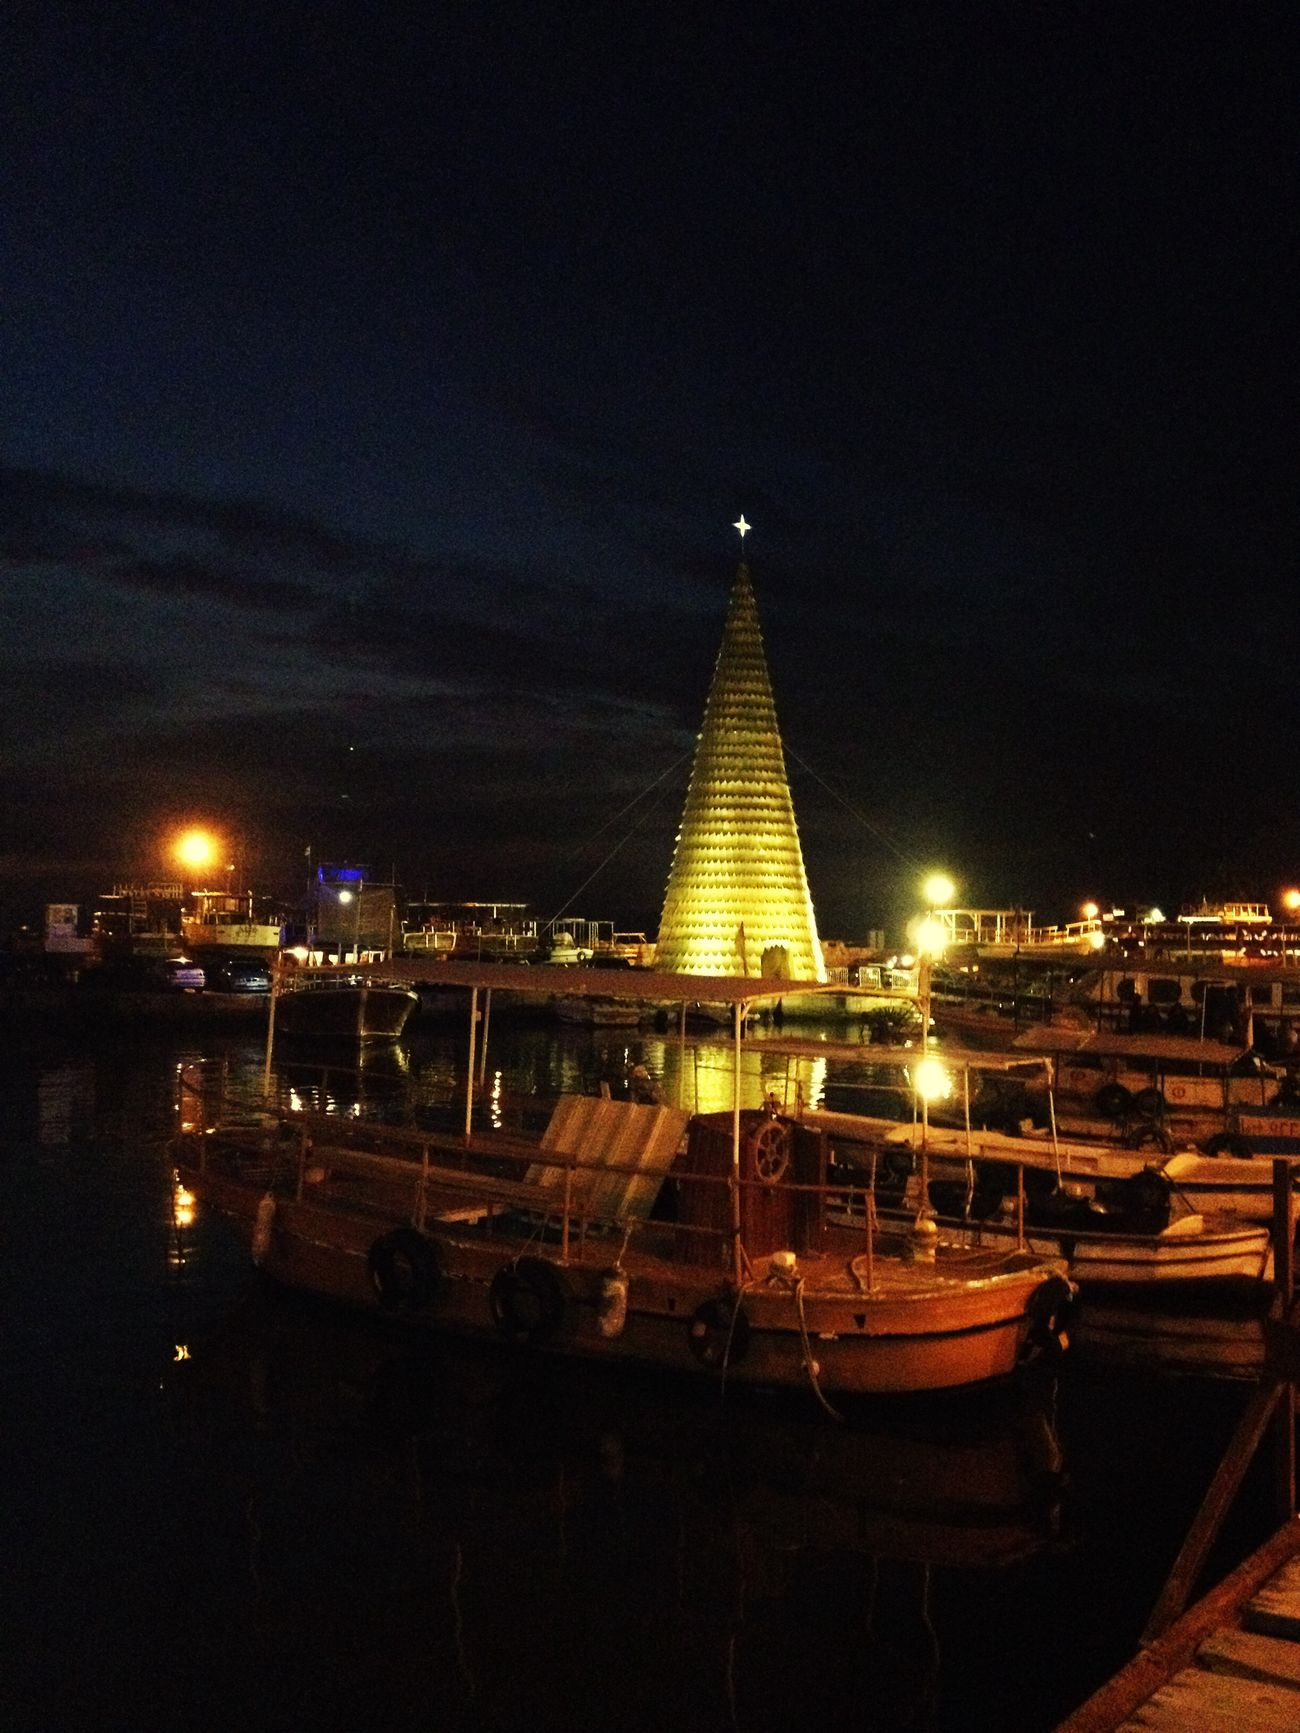 Christmas Lights Chrsitmas Tree Oh Christmas Tree Oh Christmas Tree Jbeil Harbor At Night Having fun Hanging Out Hello World Street Photography Historic Seaport At Night